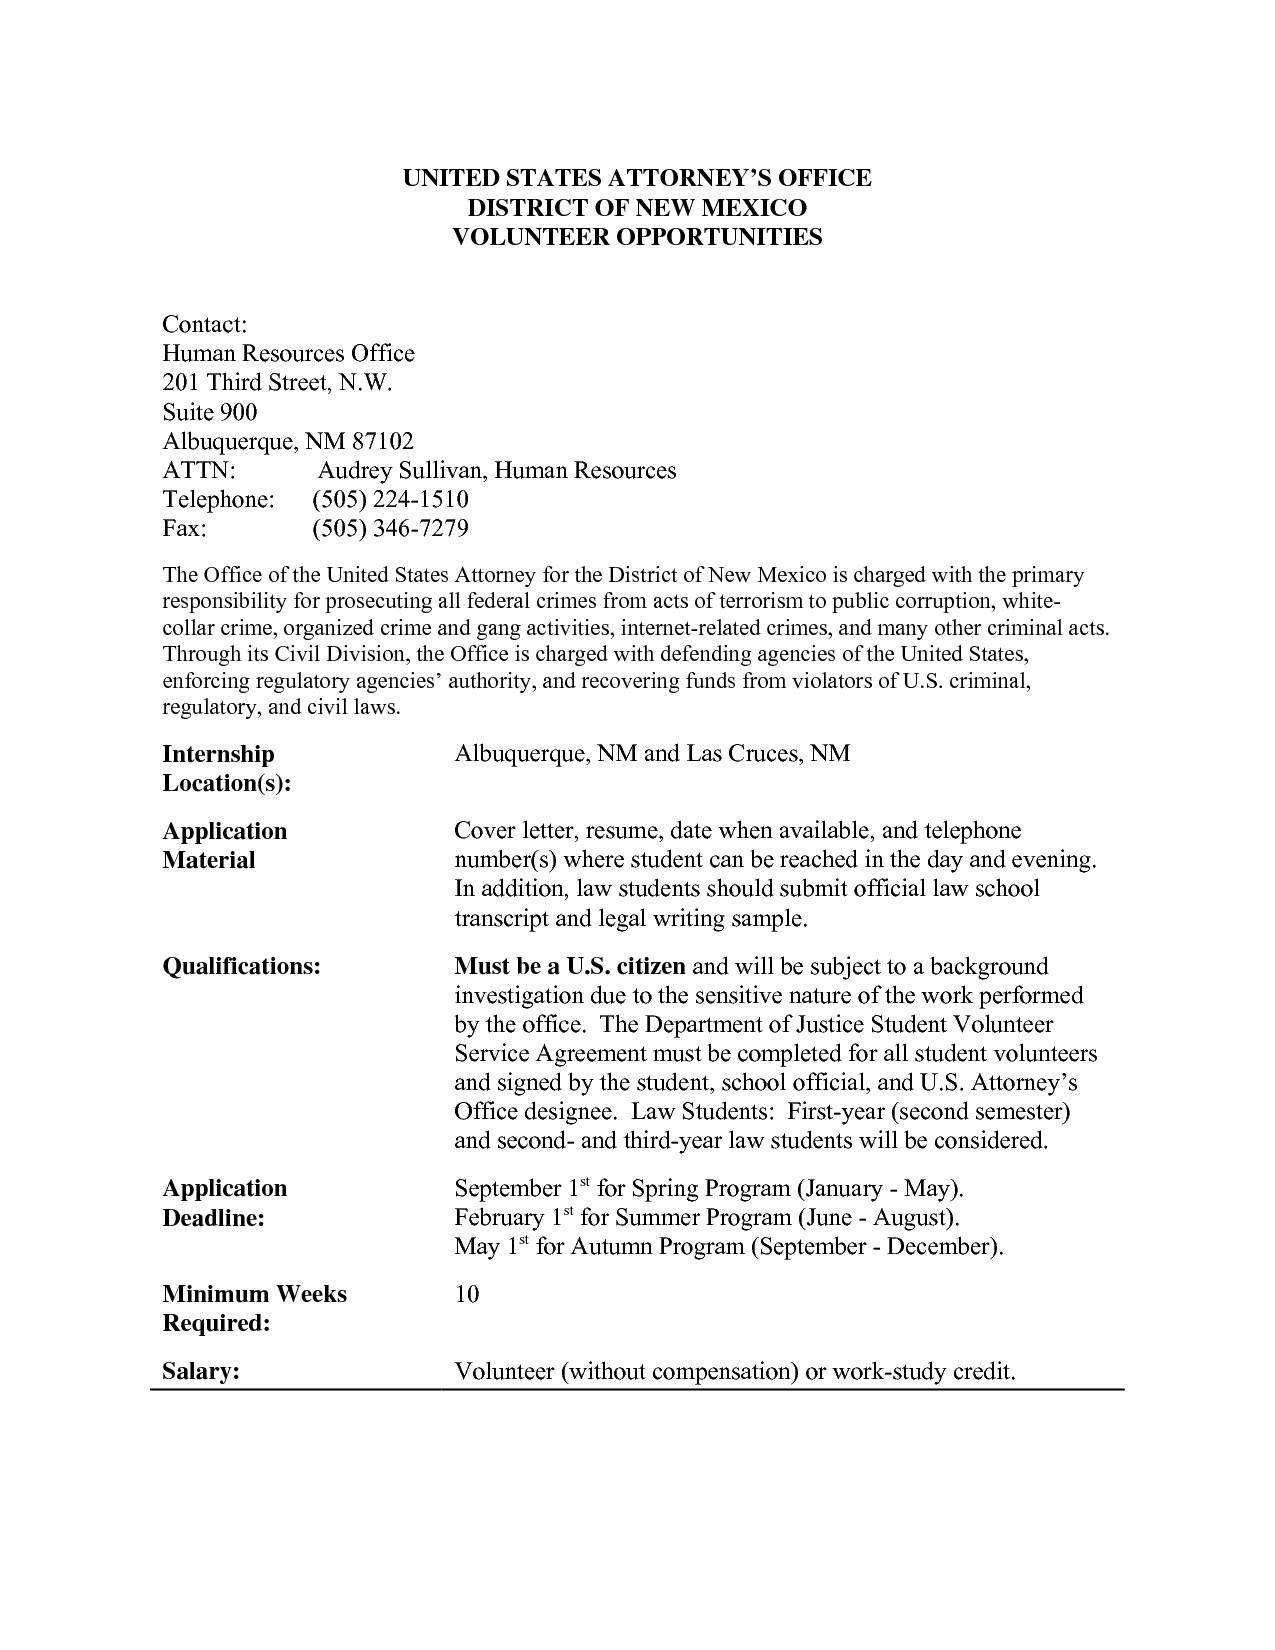 12 Mba Application Resume Template Examples | Resume Template